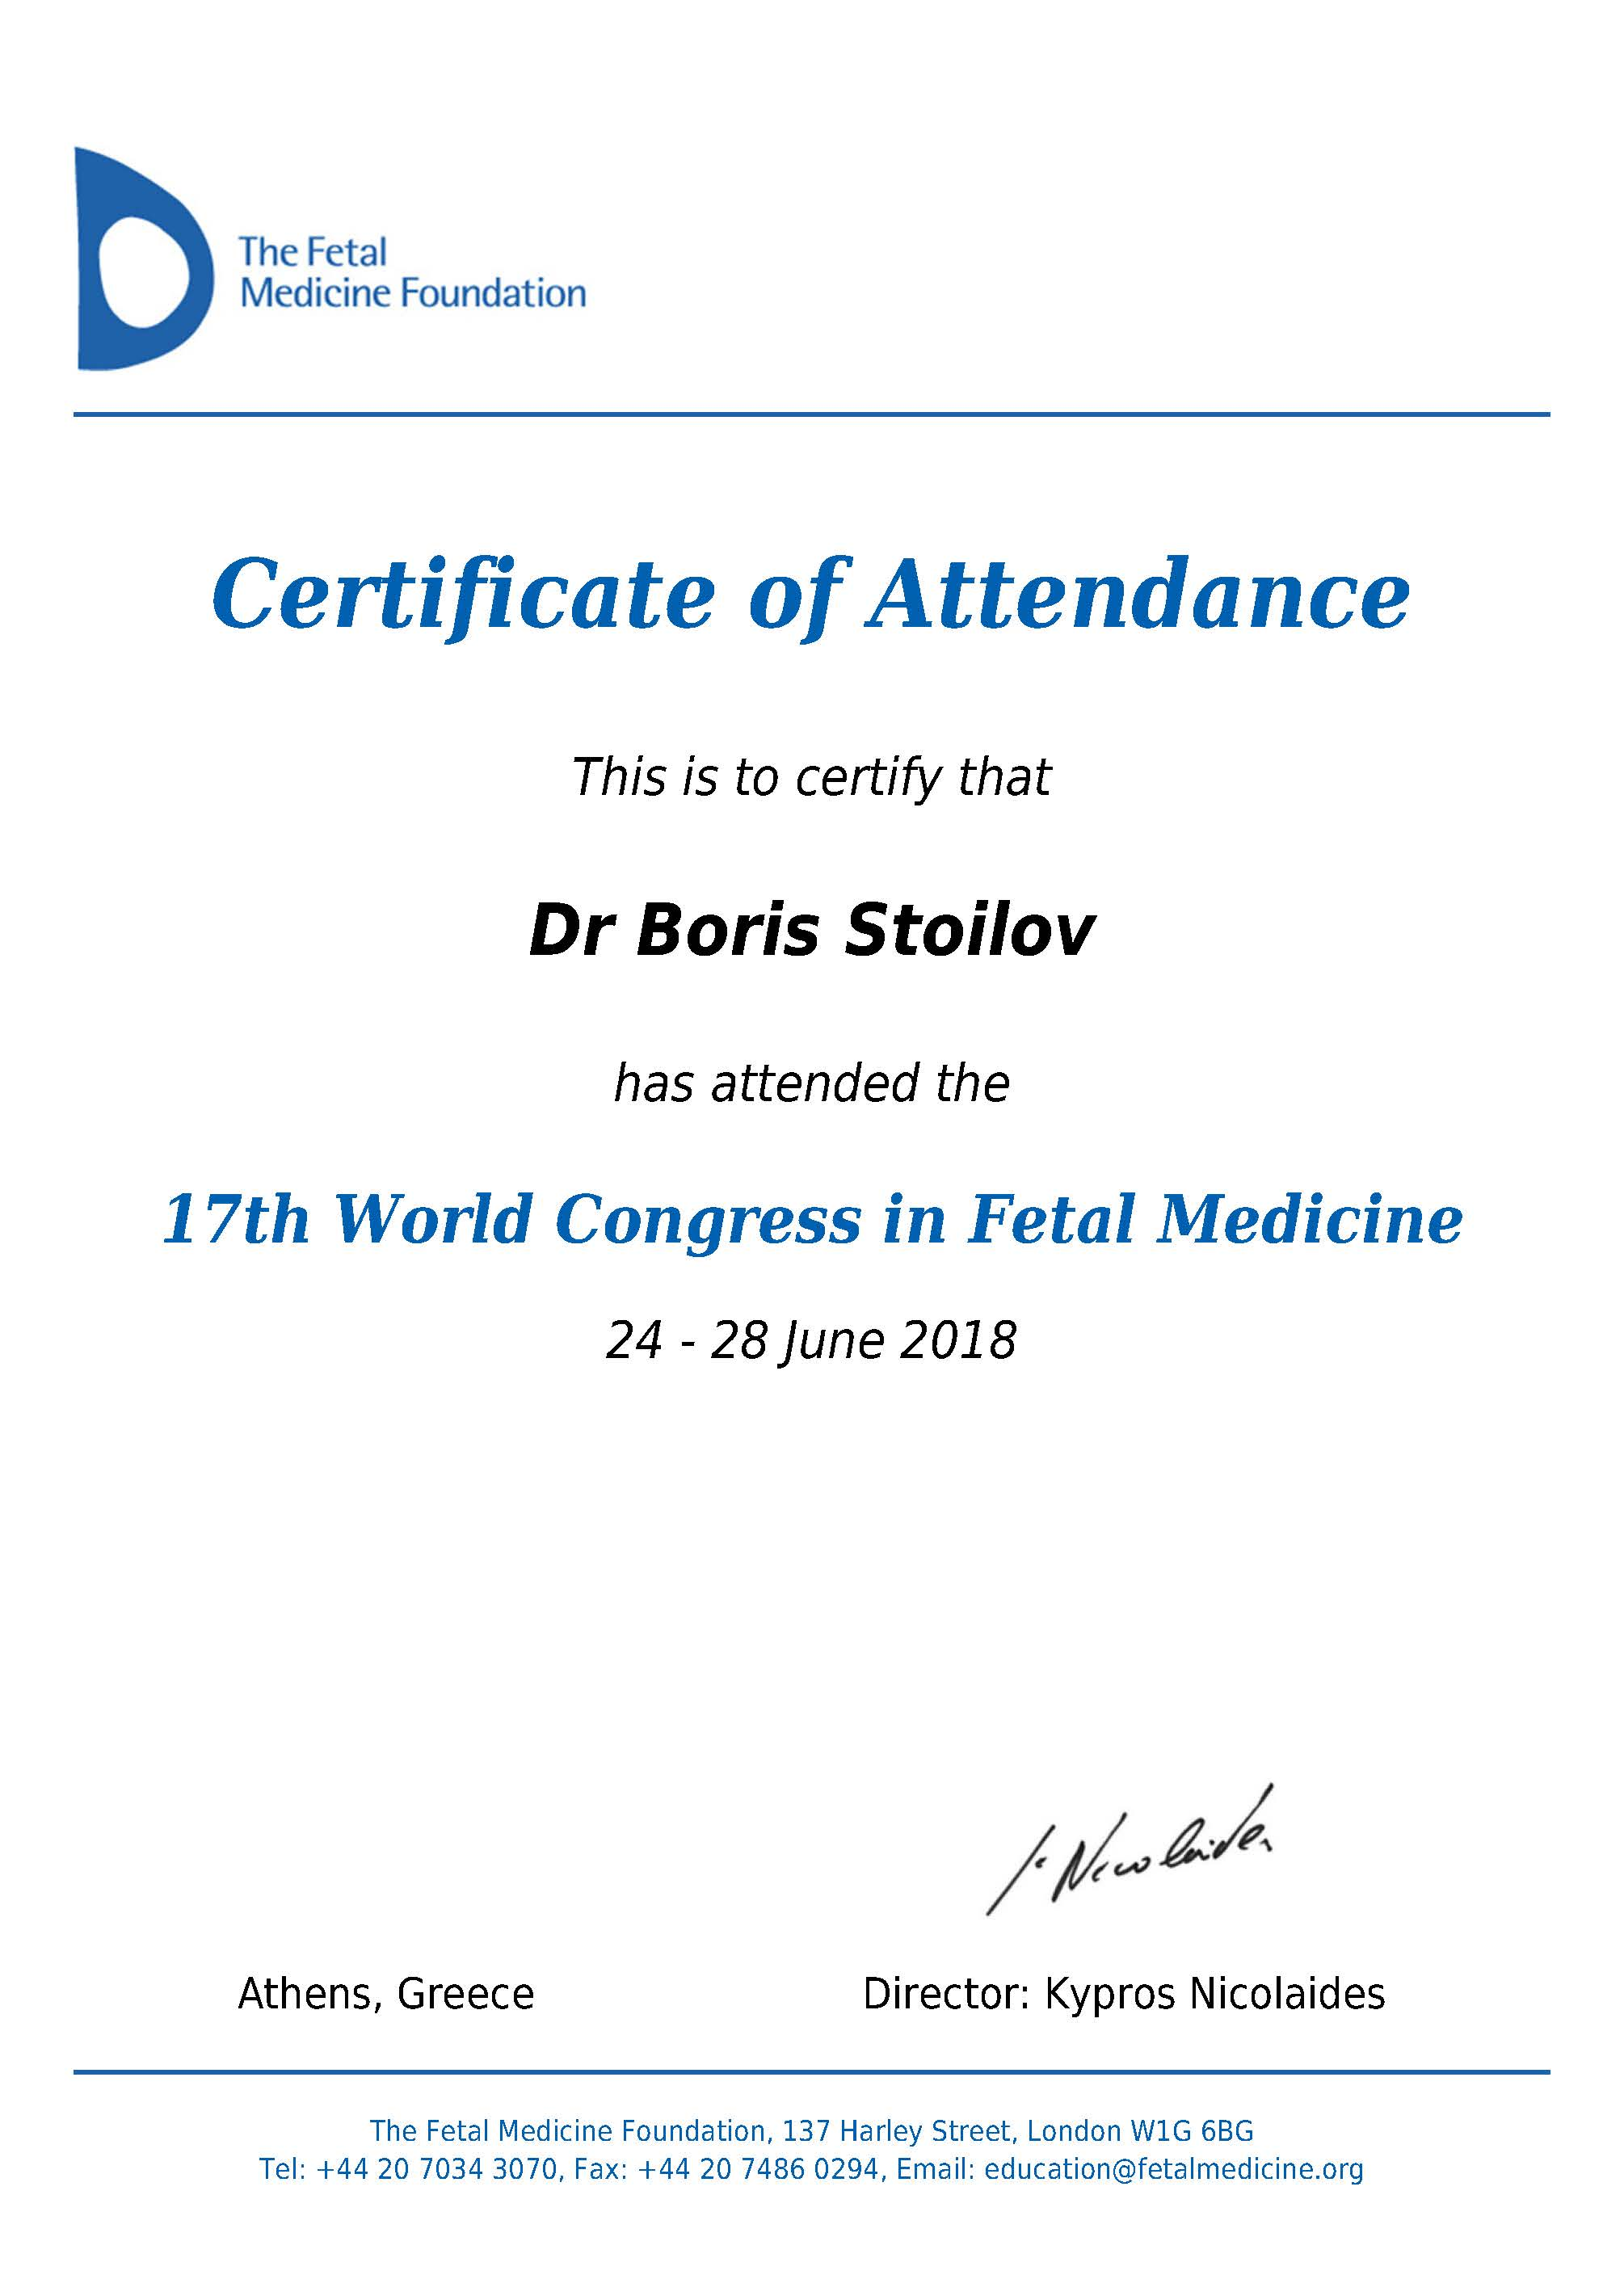 Certificate of Attendance, 17th World Congress in Fetal Medicine